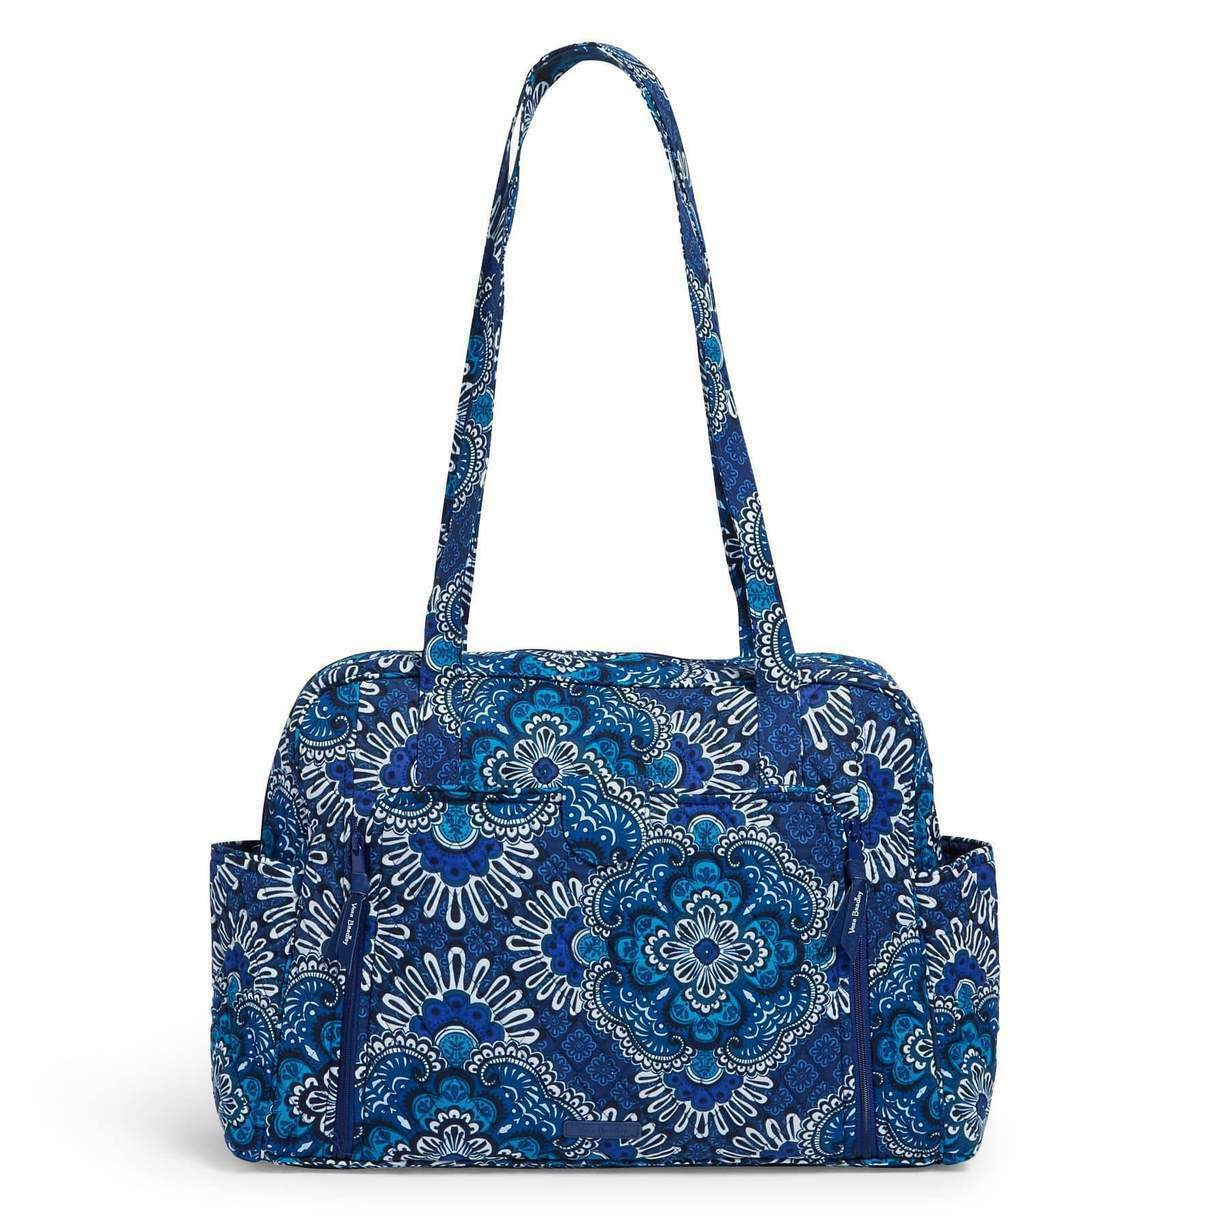 Primary image for Vera Bradley Factory style baby bag in Blue Tapestry